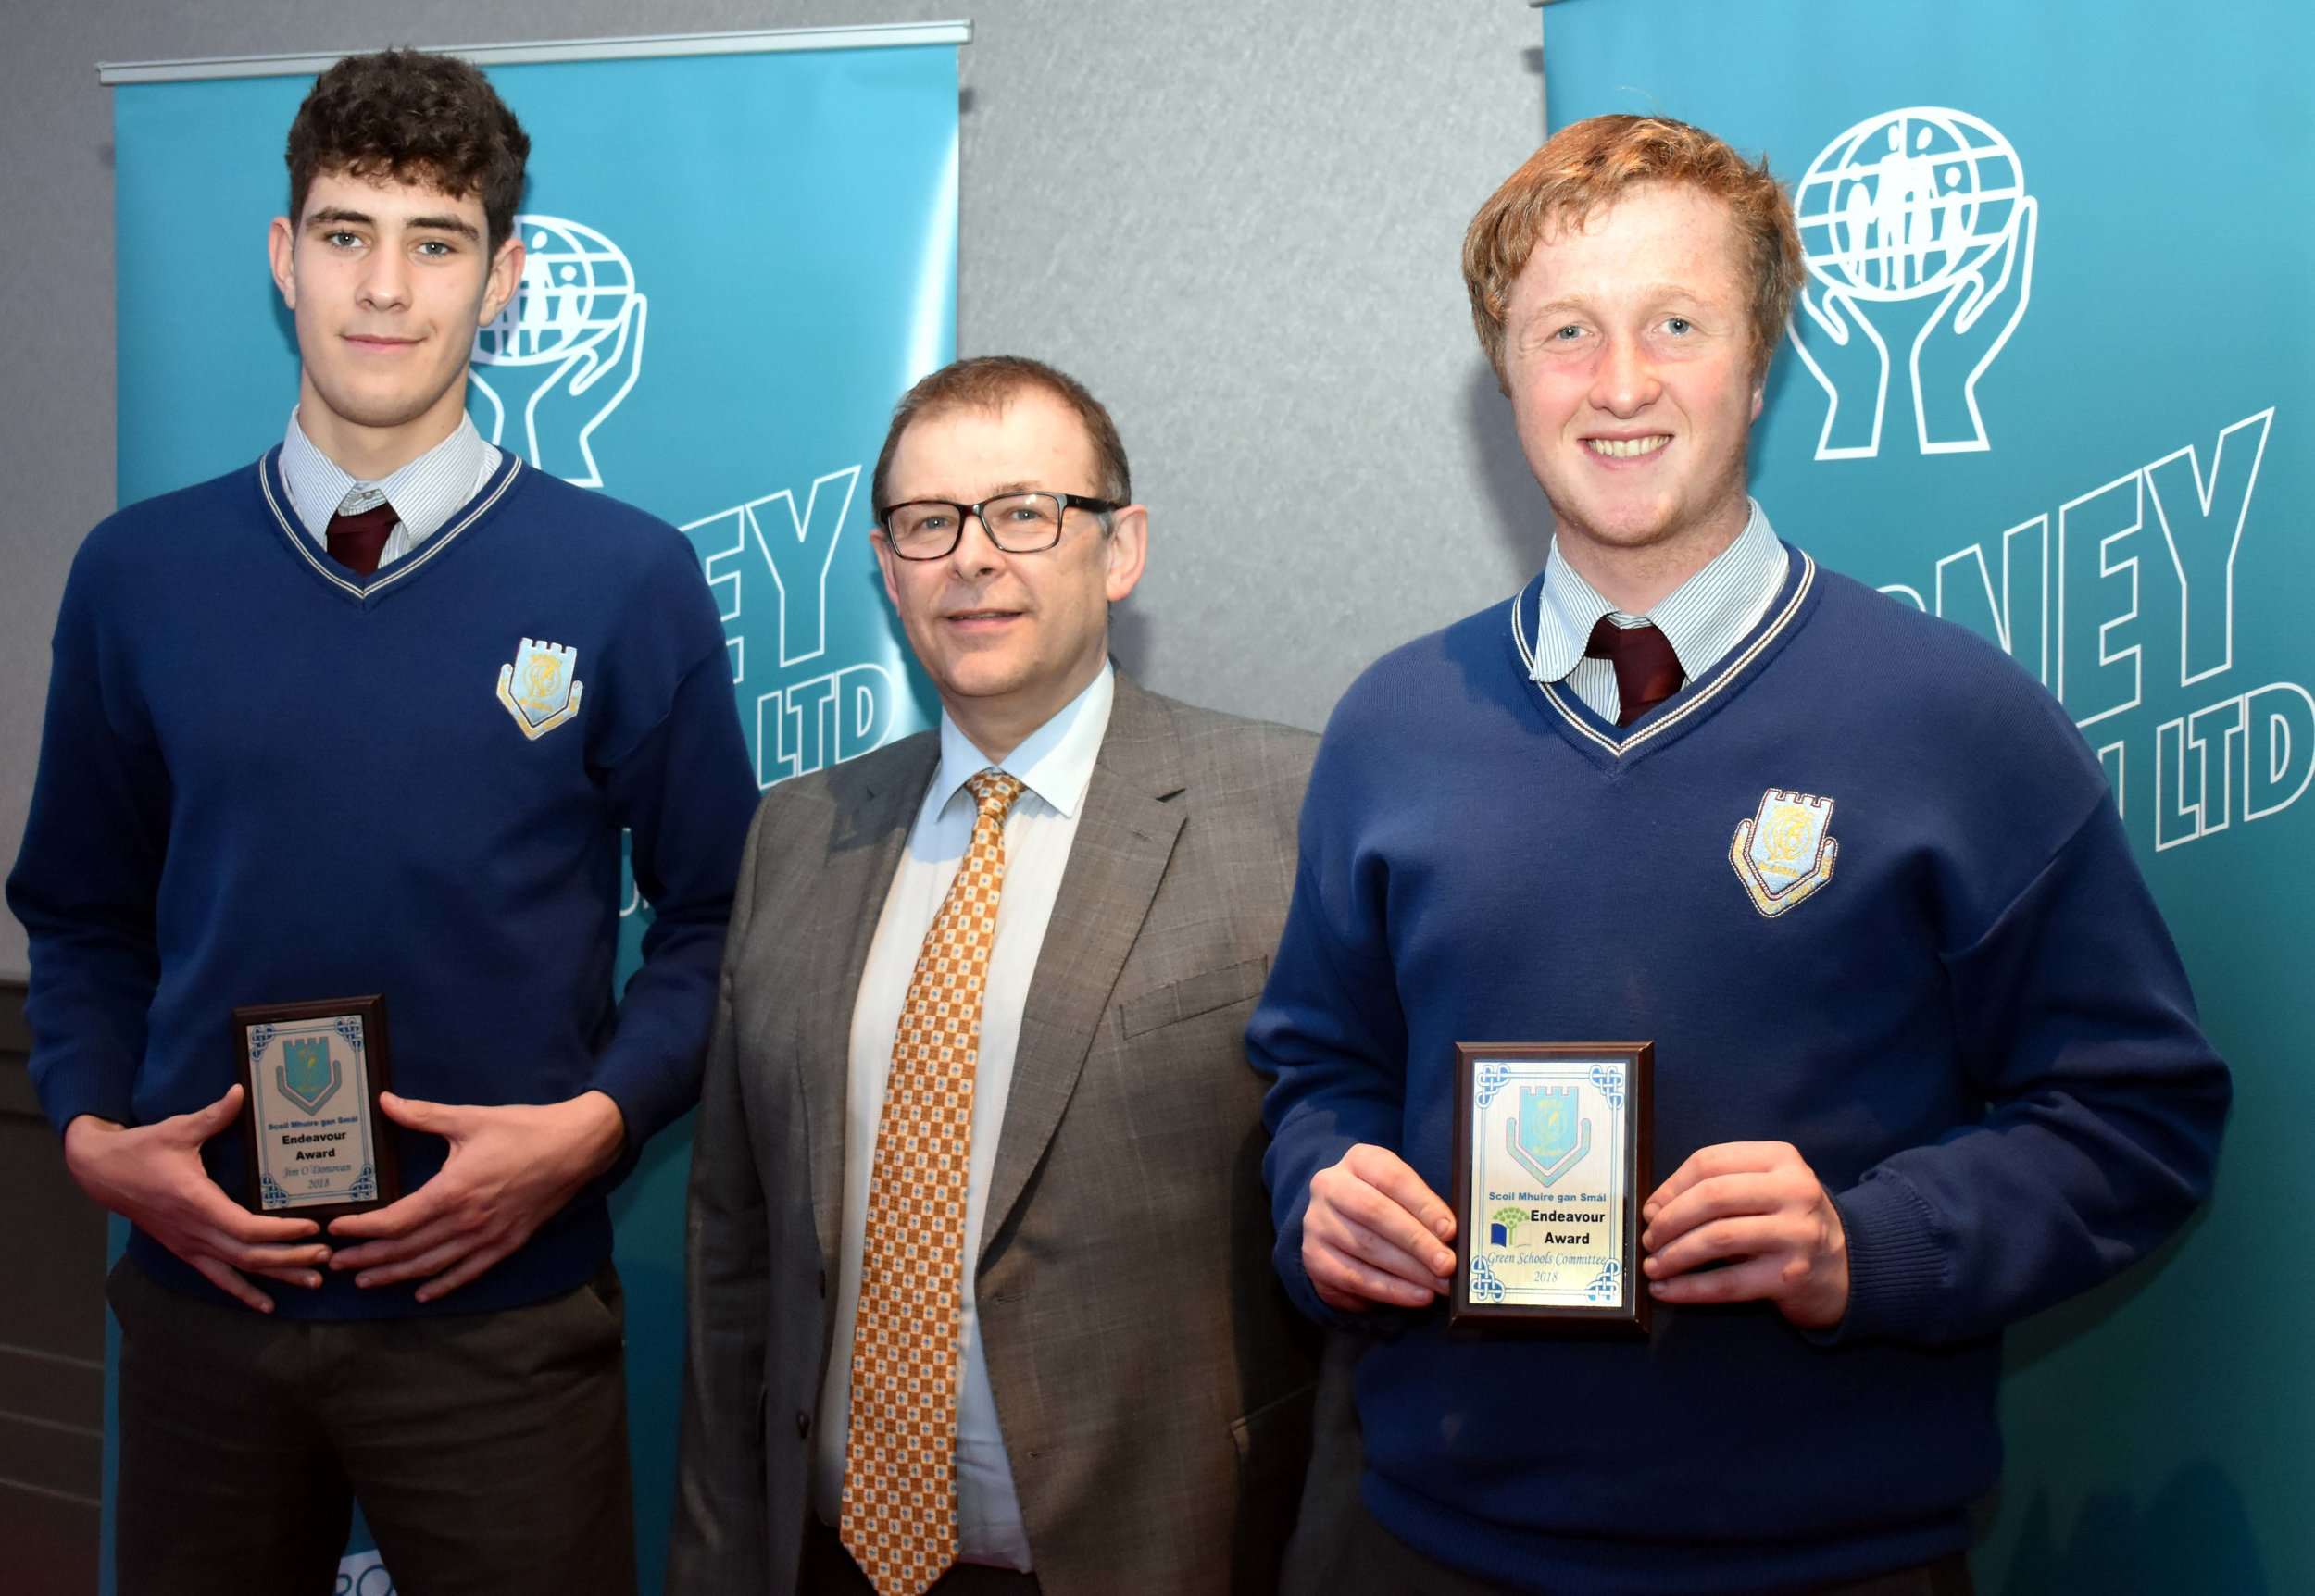 Jim O' Donovan and Seanán Jones receiving an endeavour award for volunteering to travel to Lourdes last summer with Cloyne Lourdes Group. (Pictured with Mr. Mark McGloughlin - BOM and Blarney Credit Union)